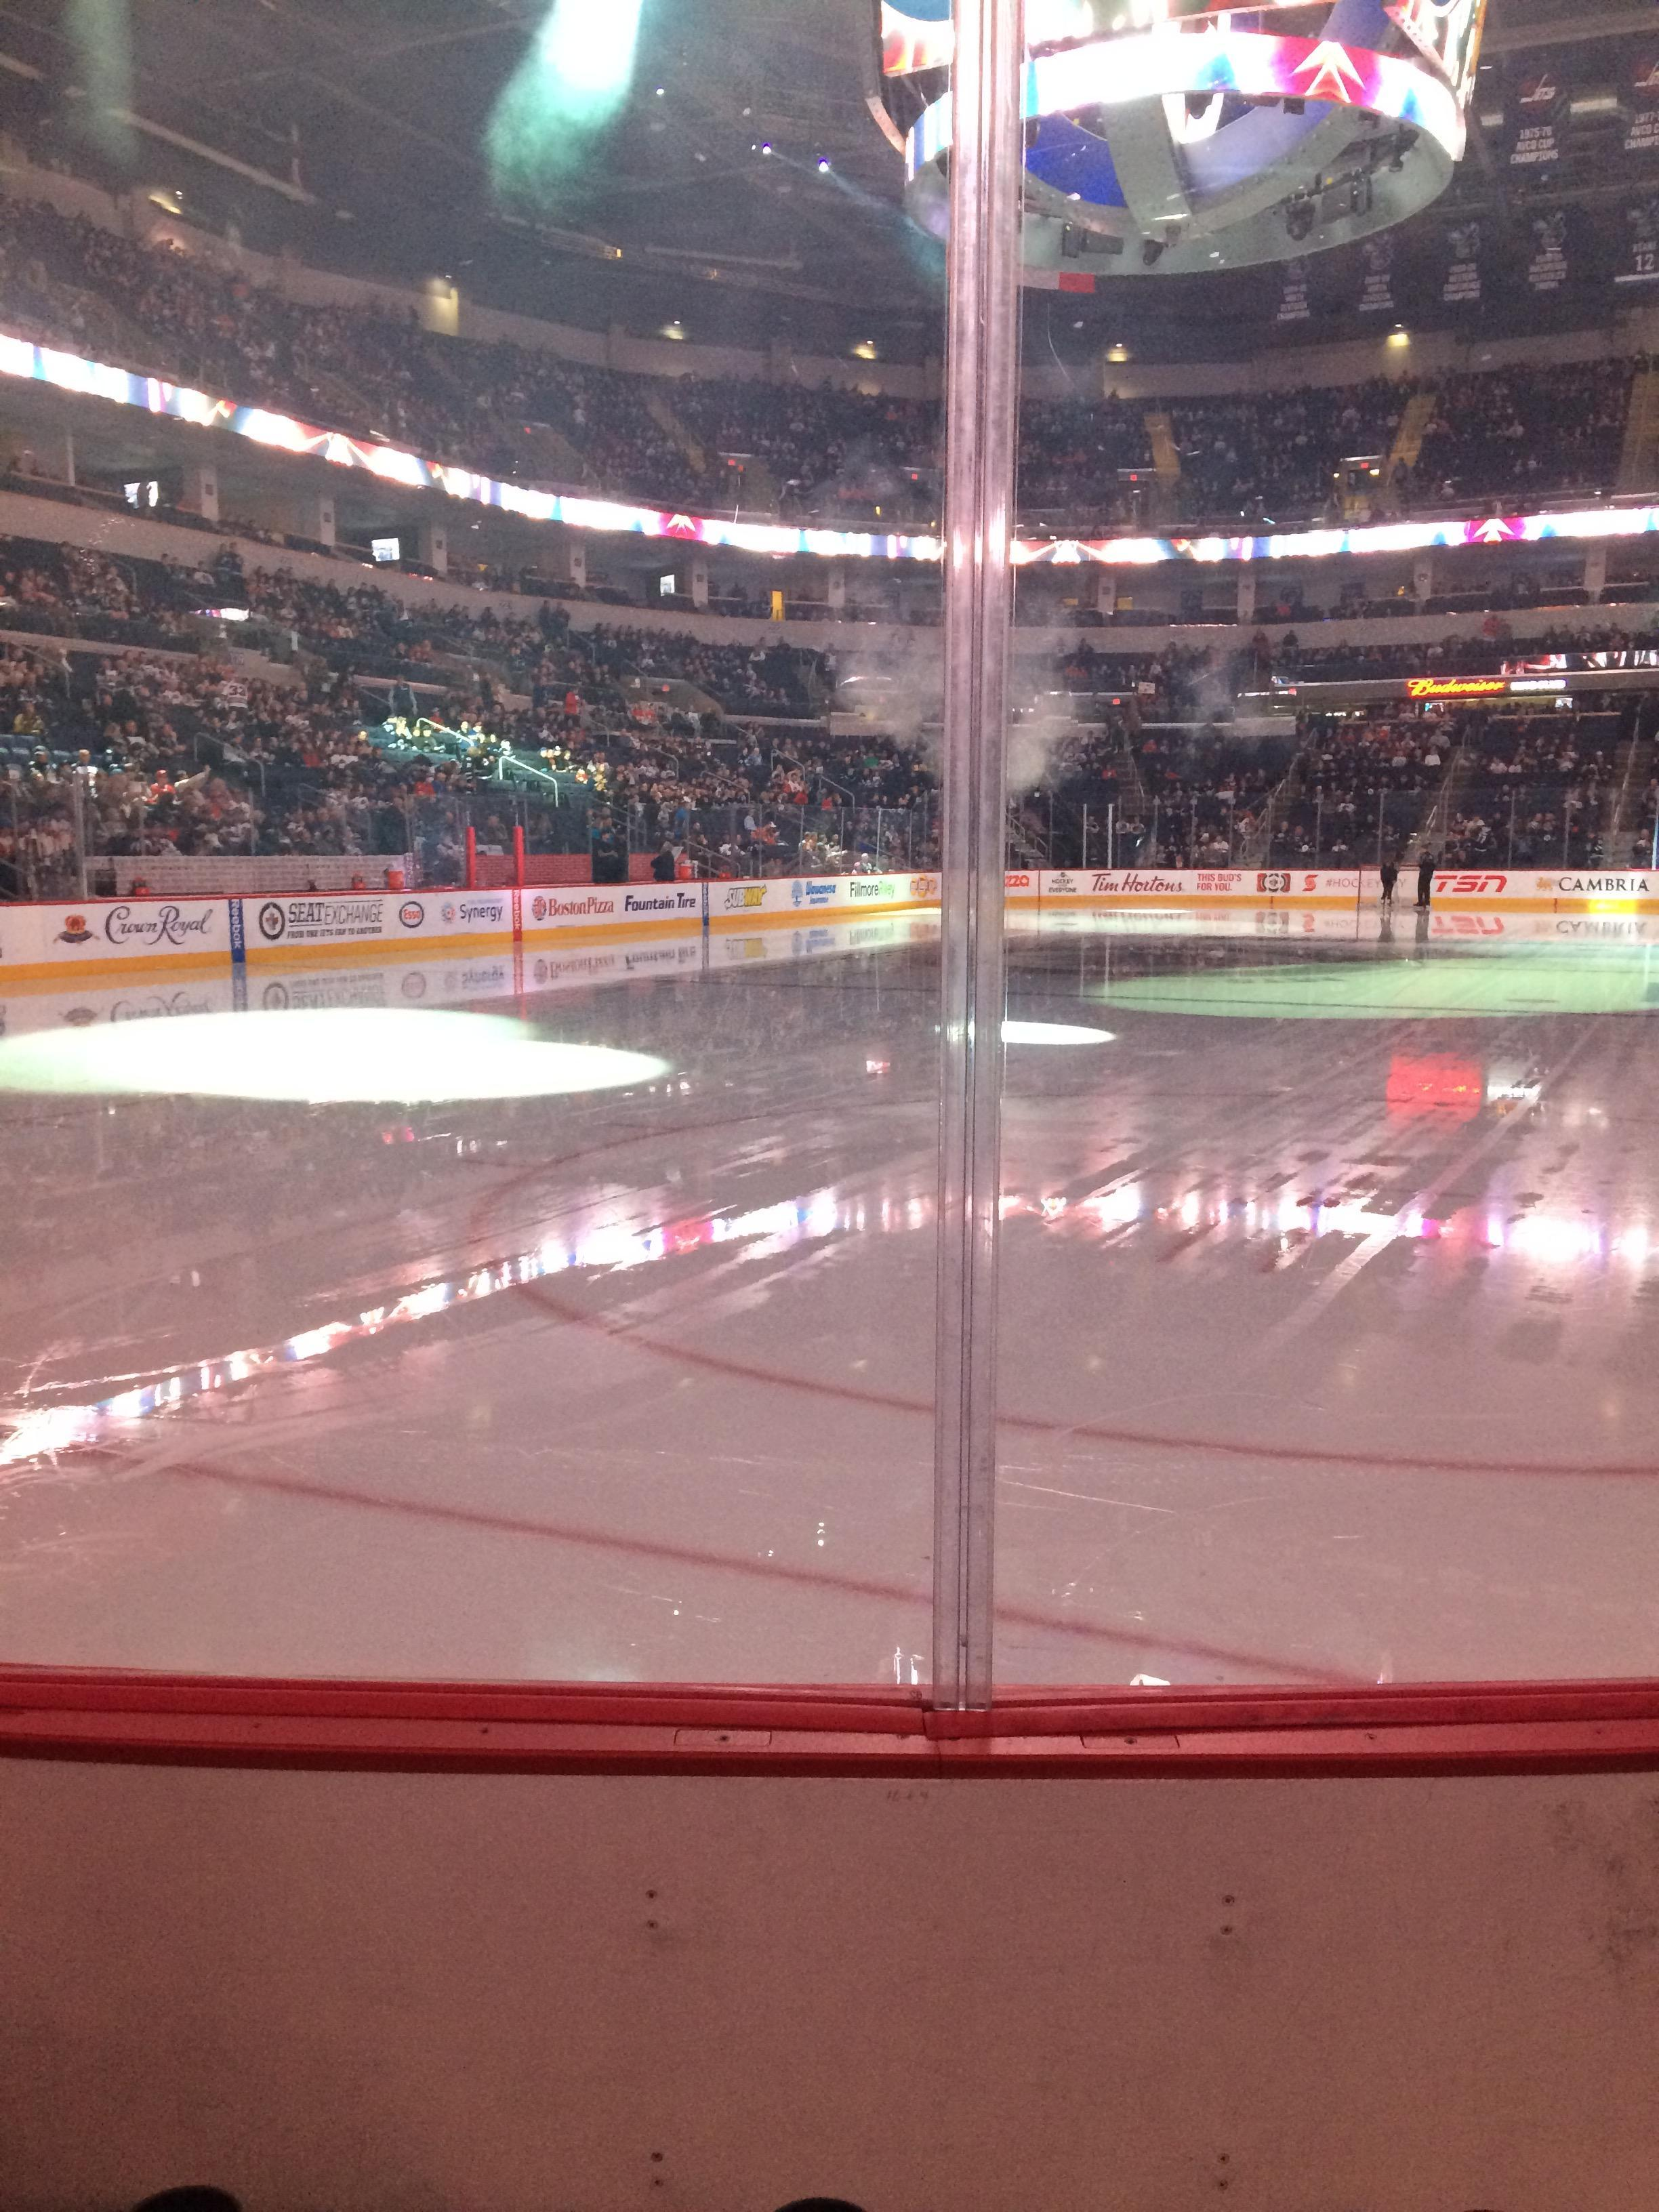 MTS Centre Section 111 Row 3